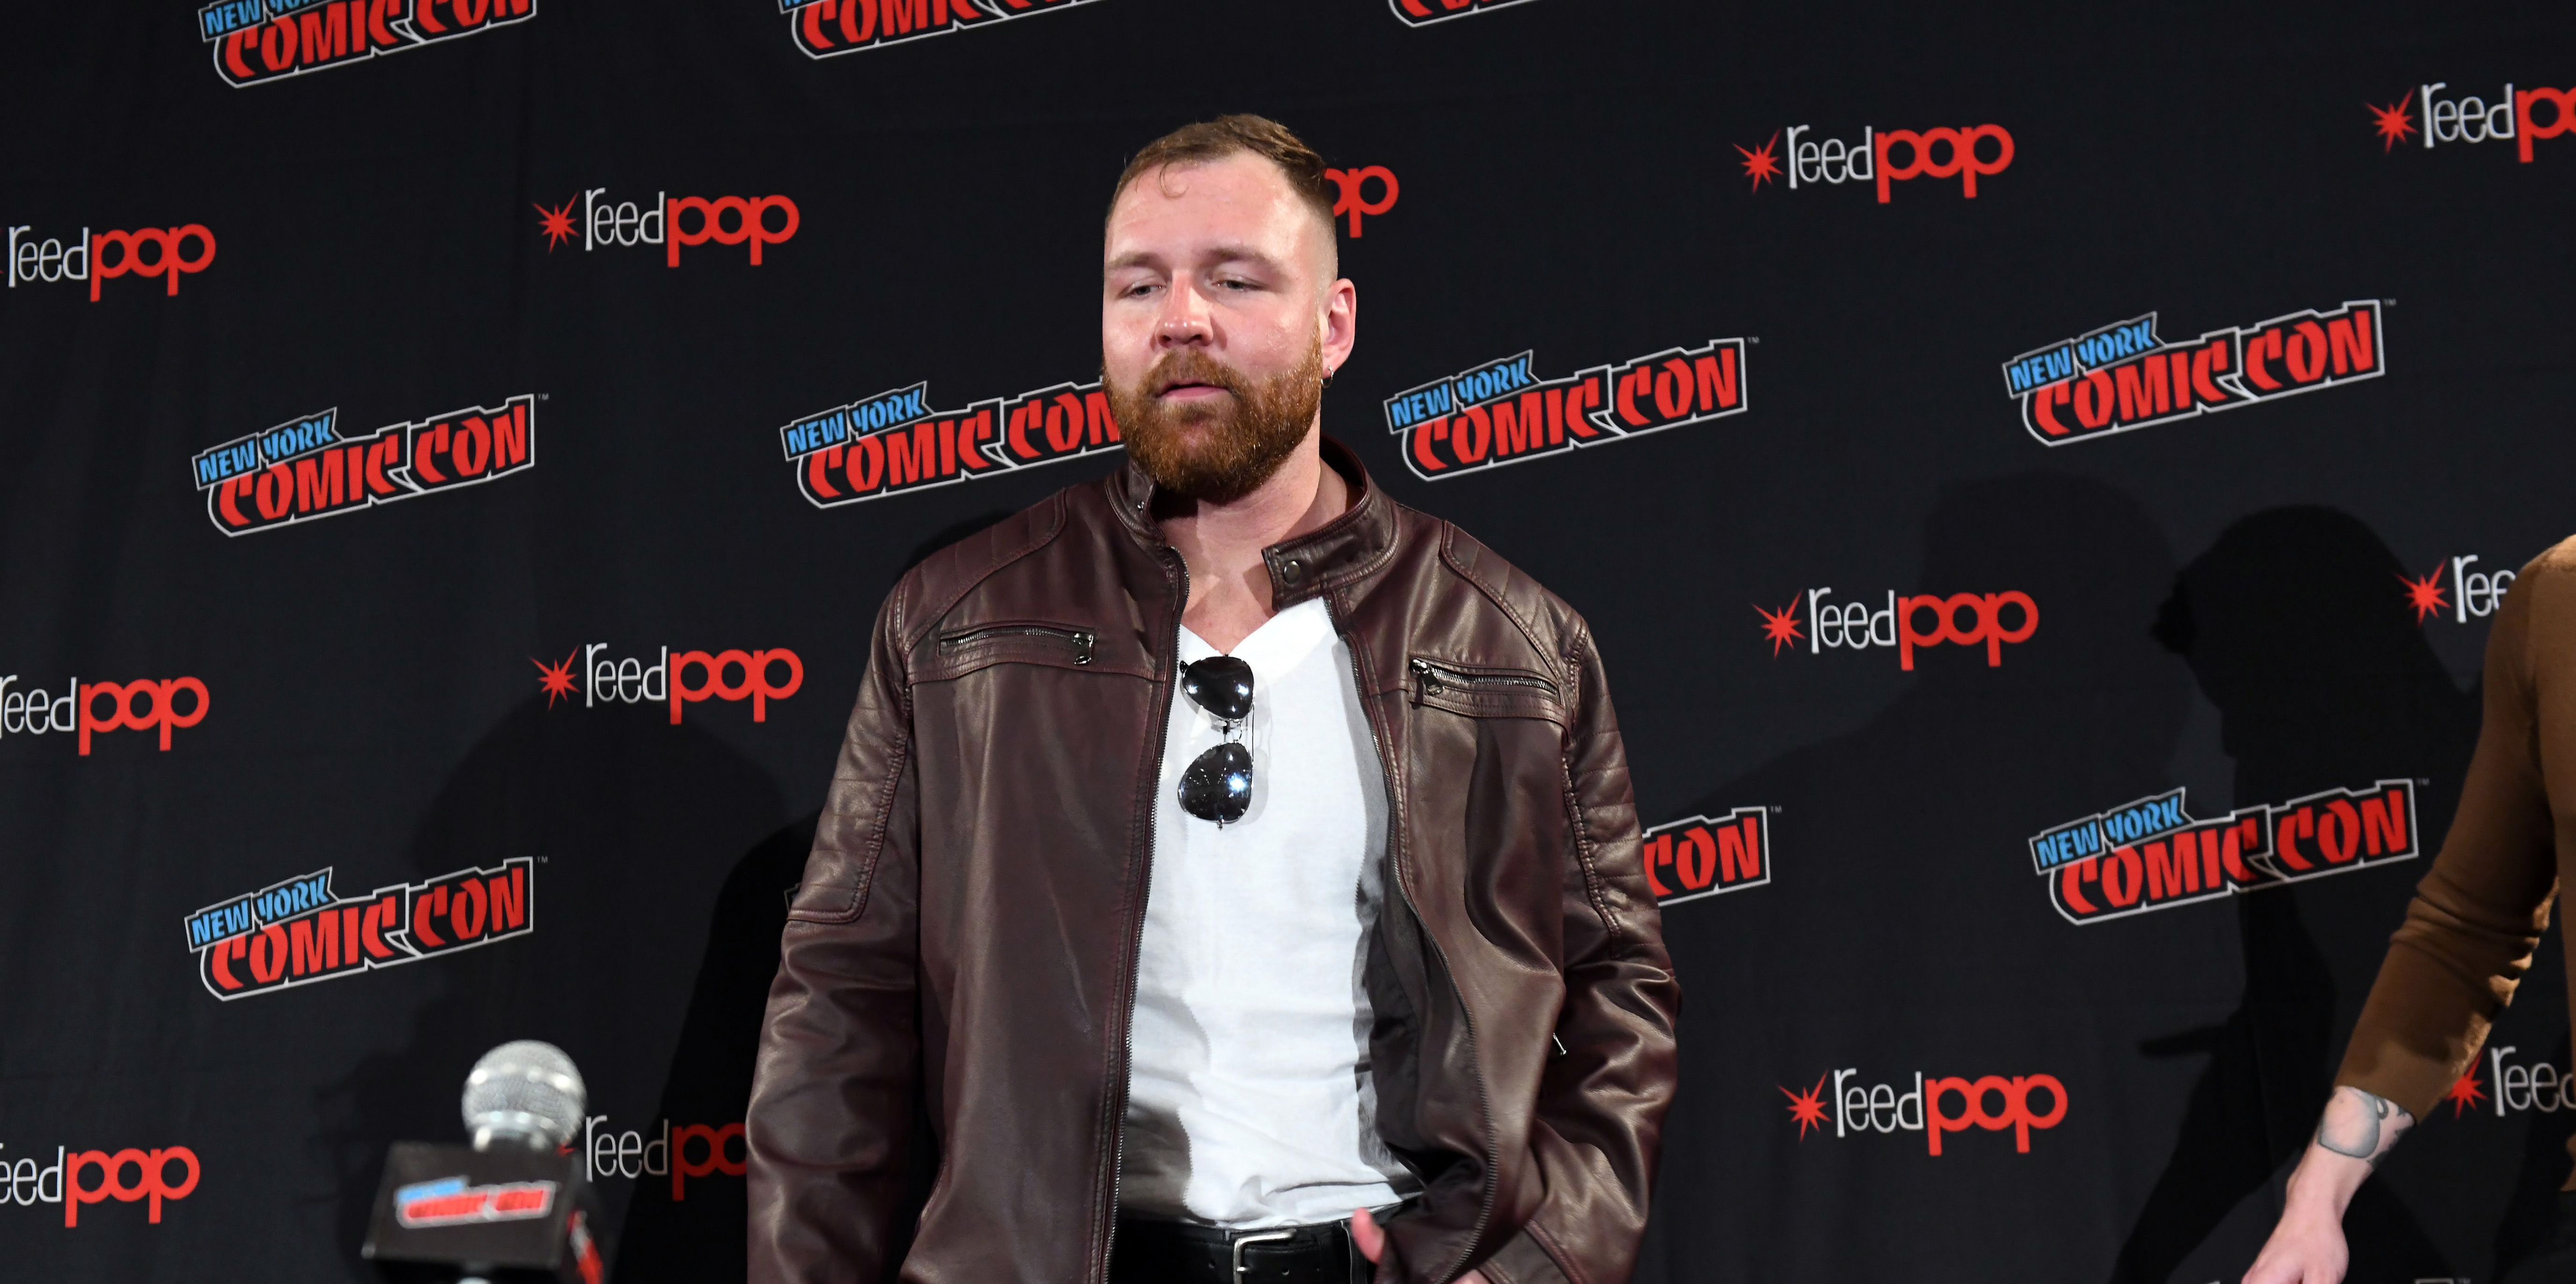 AEW's Jon Moxley Discusses Going 'Brain Dead' At WWE, Praises New Company